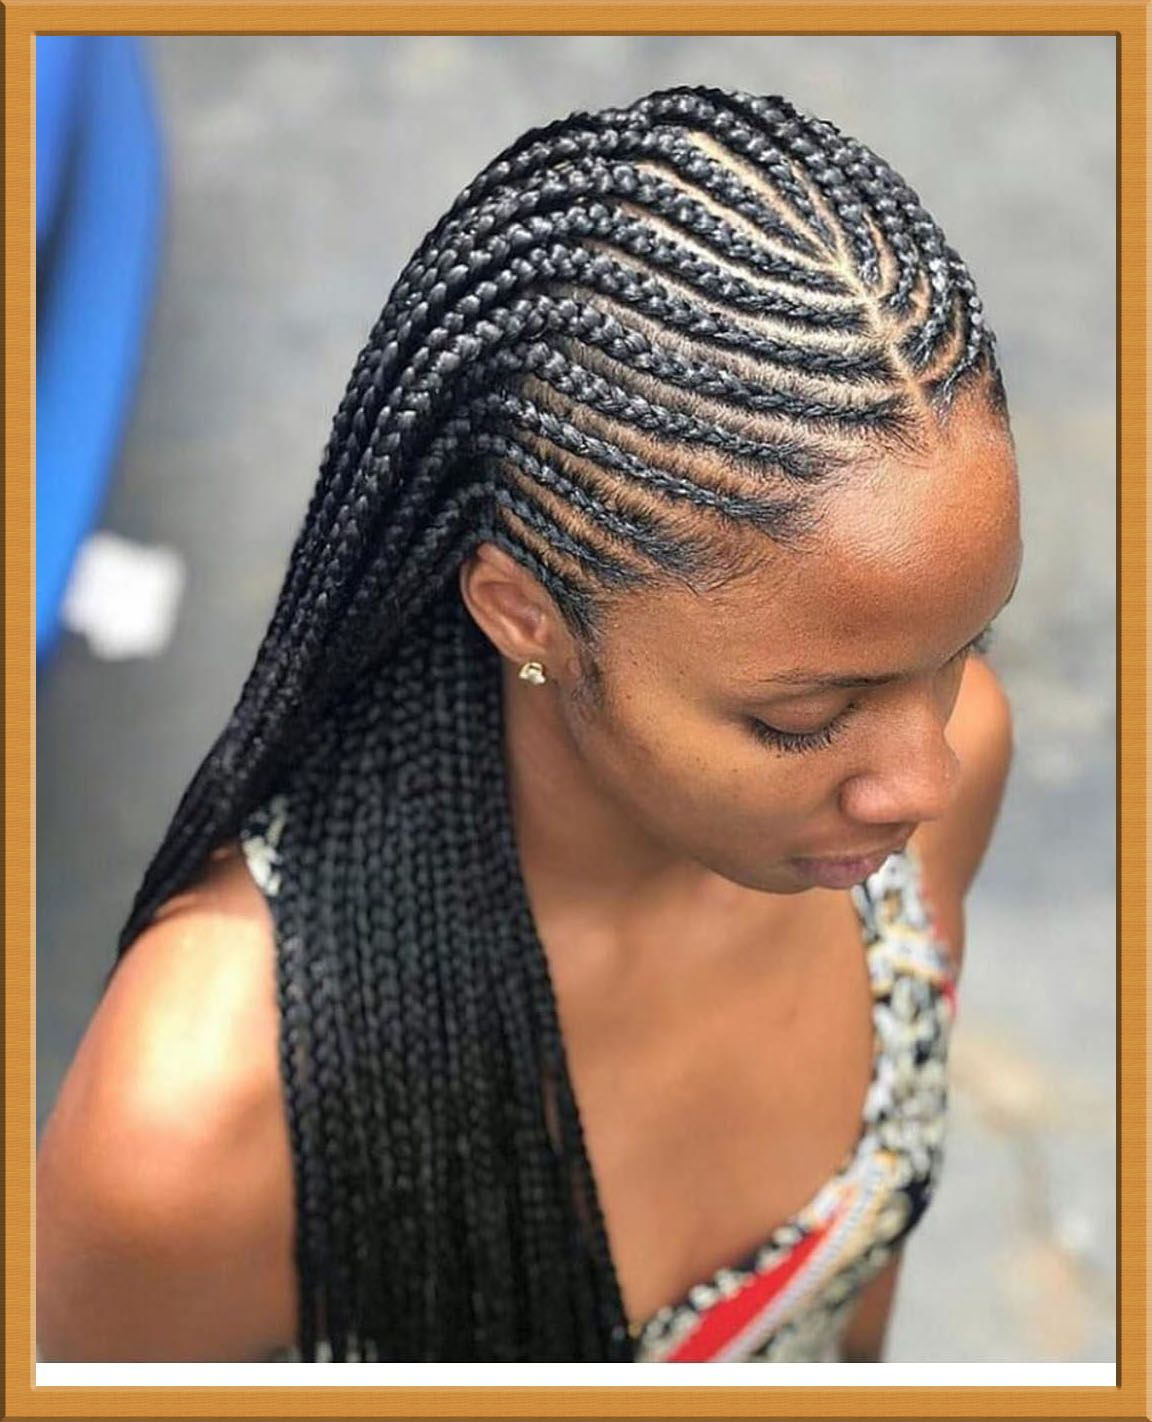 7 Tips From A Hair Styles Pro – Dec 2020